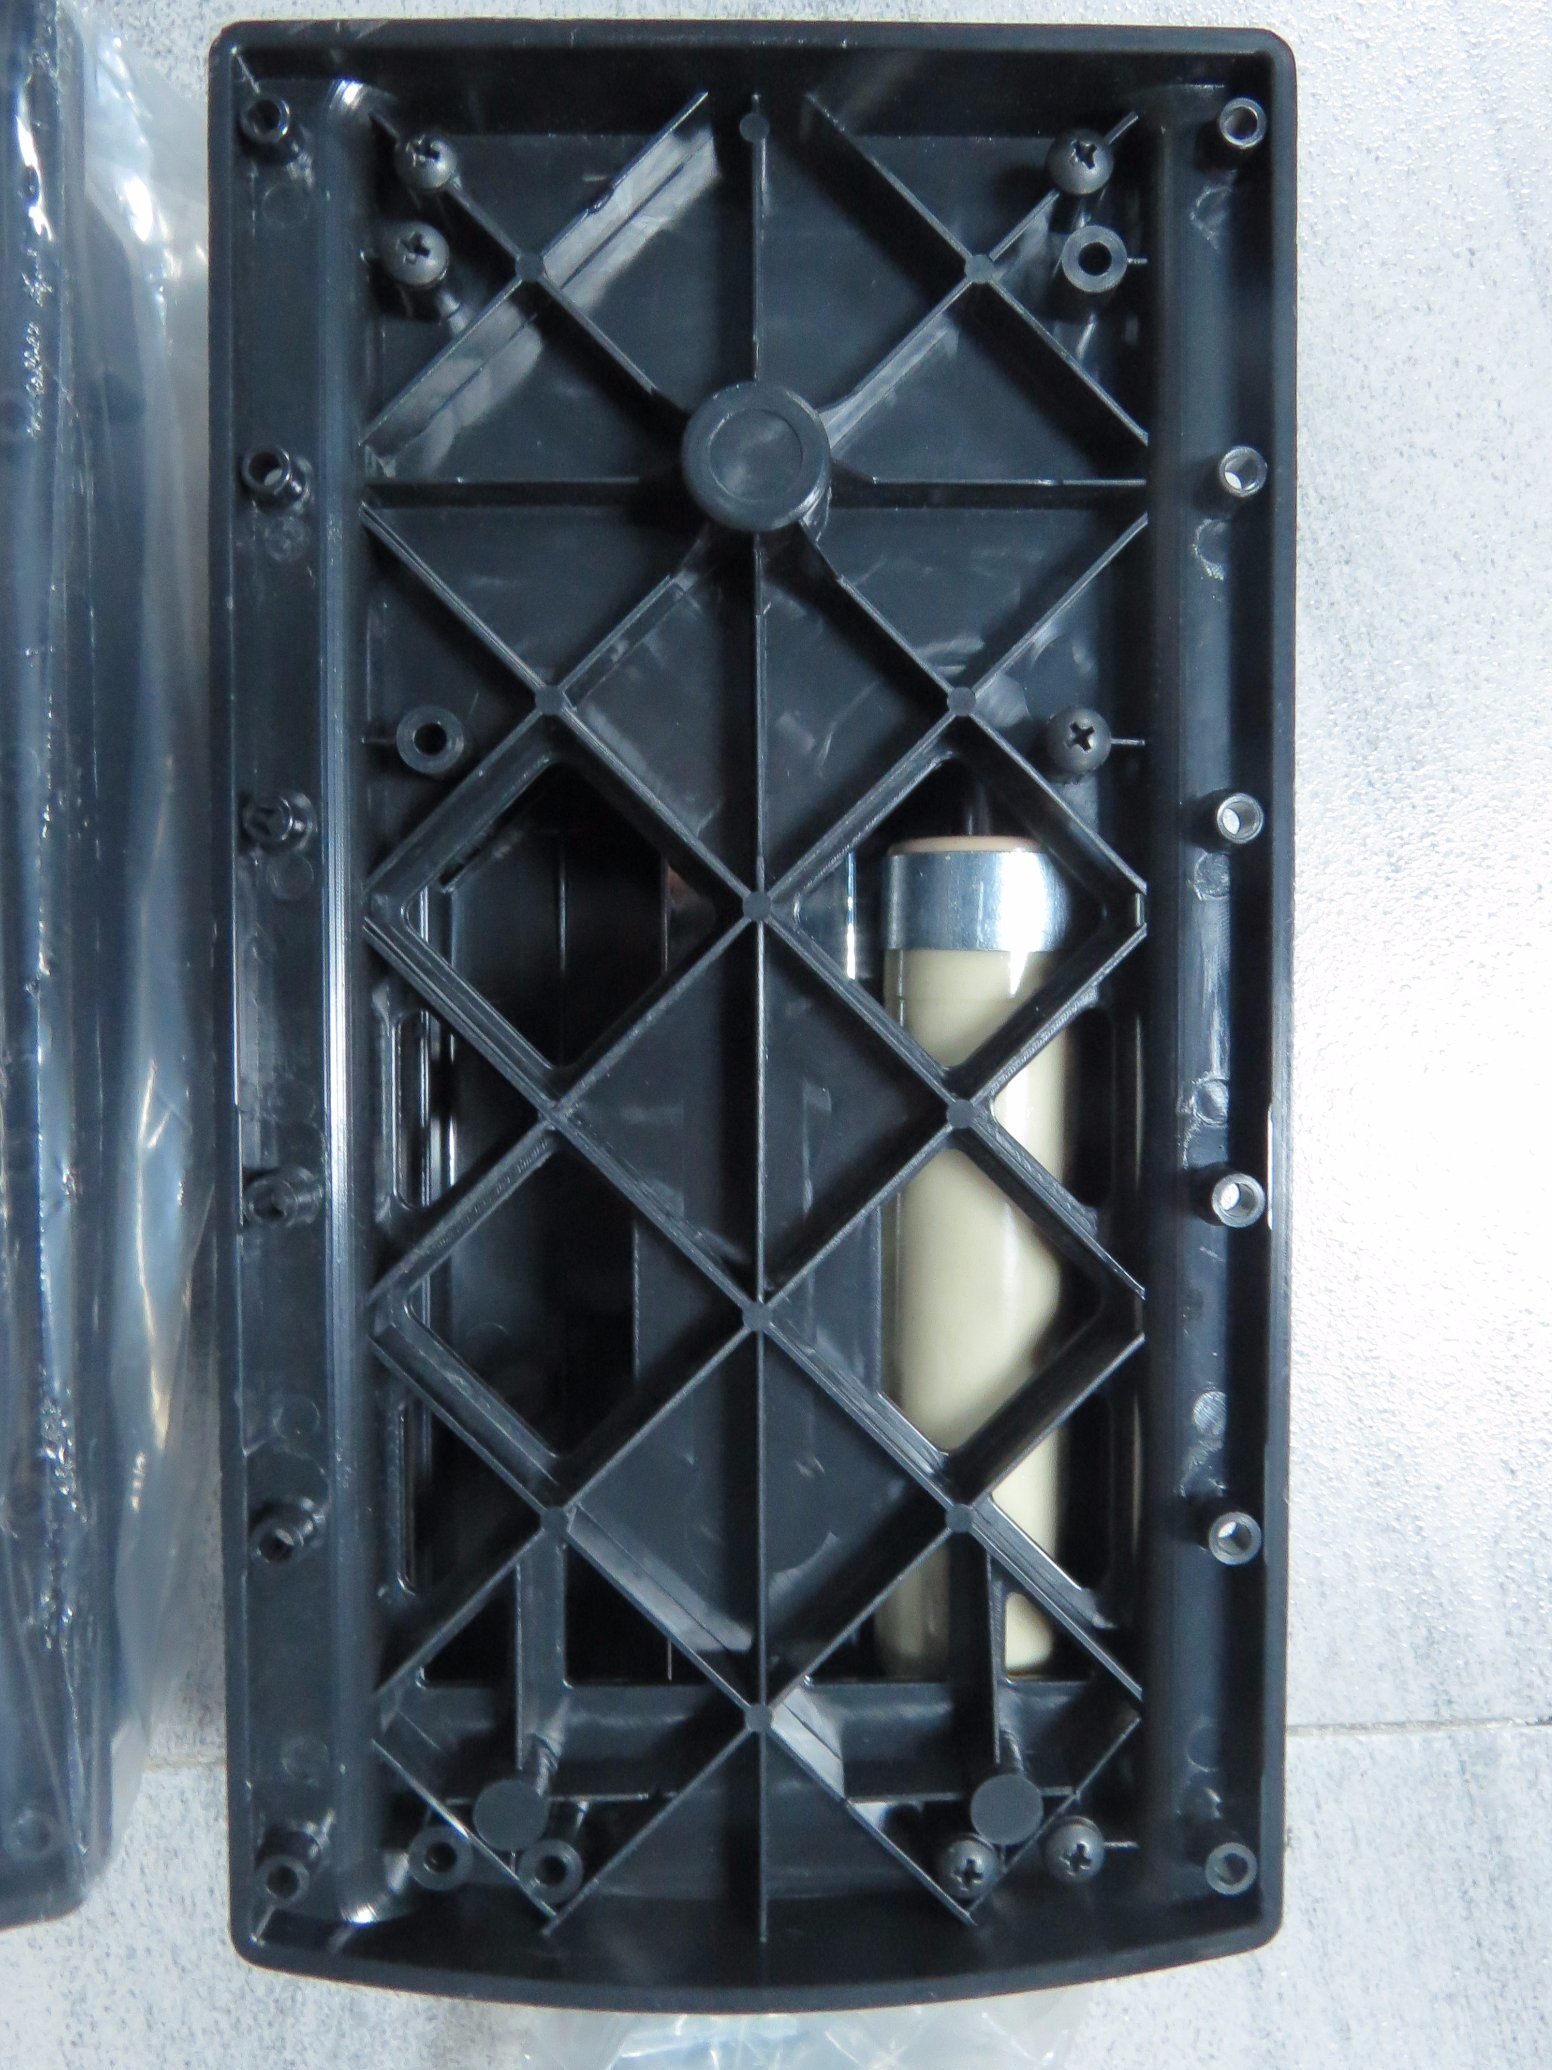 Pull-Down Closet Lift with Iron and ABS, Black and Silver Color